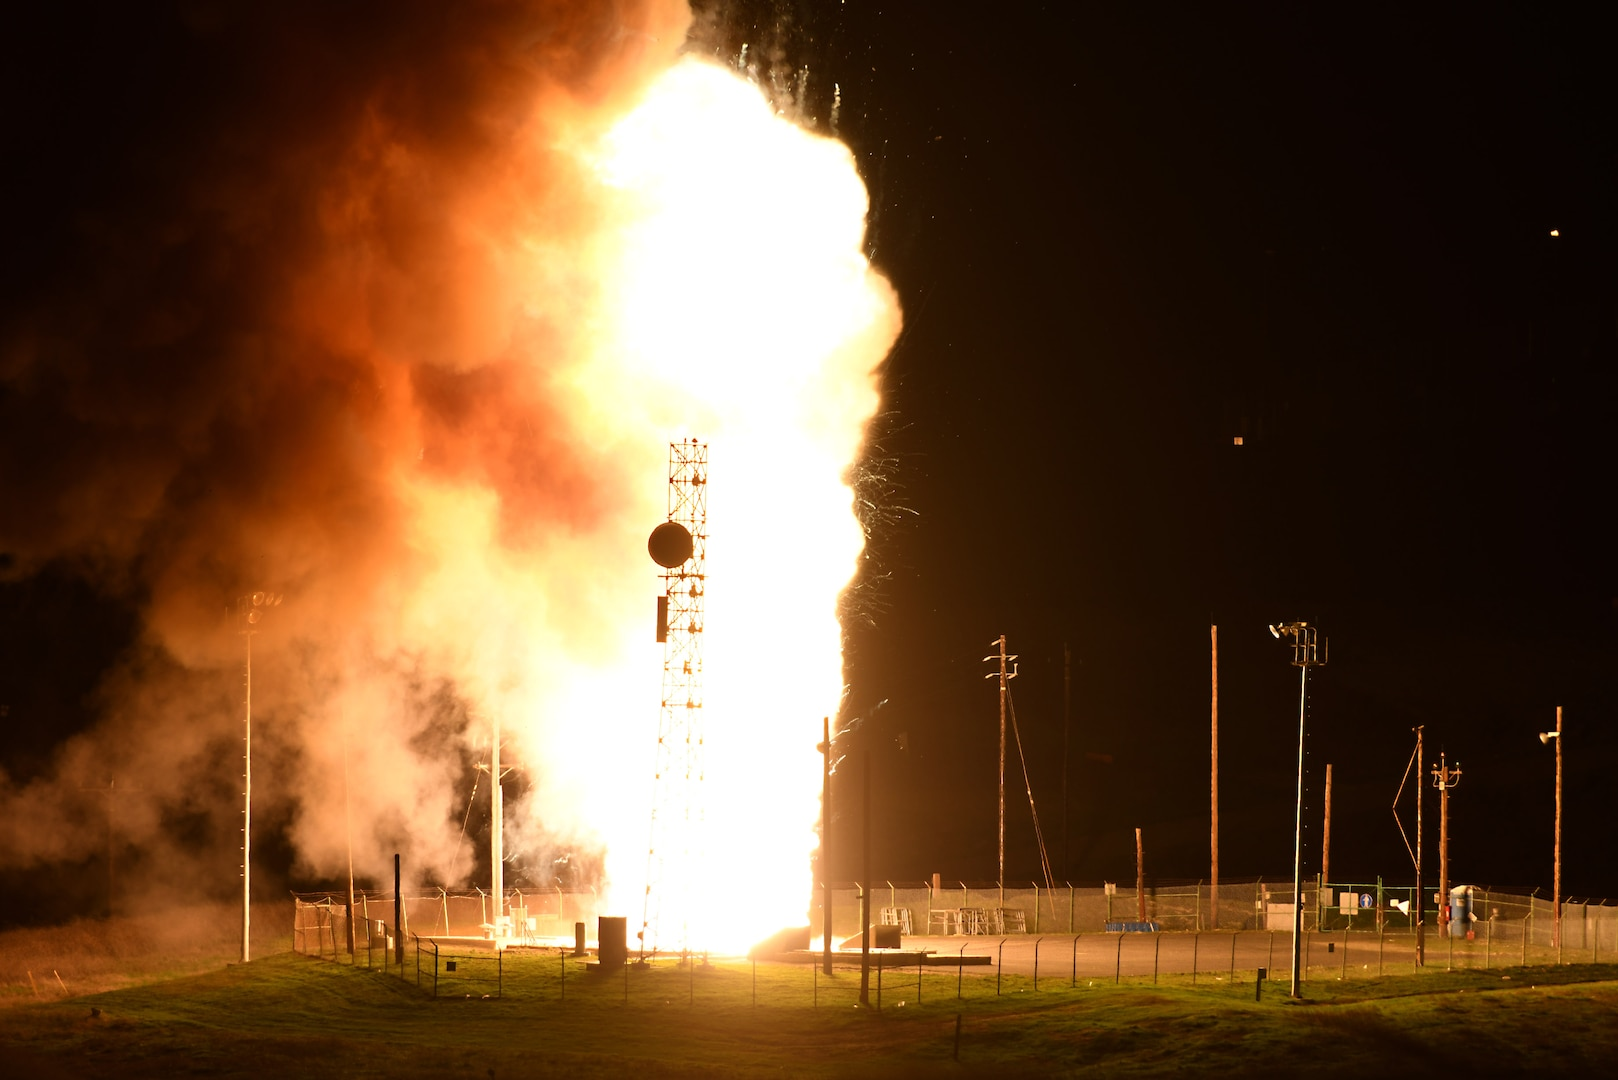 A fence surrounds a platform, as a column of flames billow against the night sky.